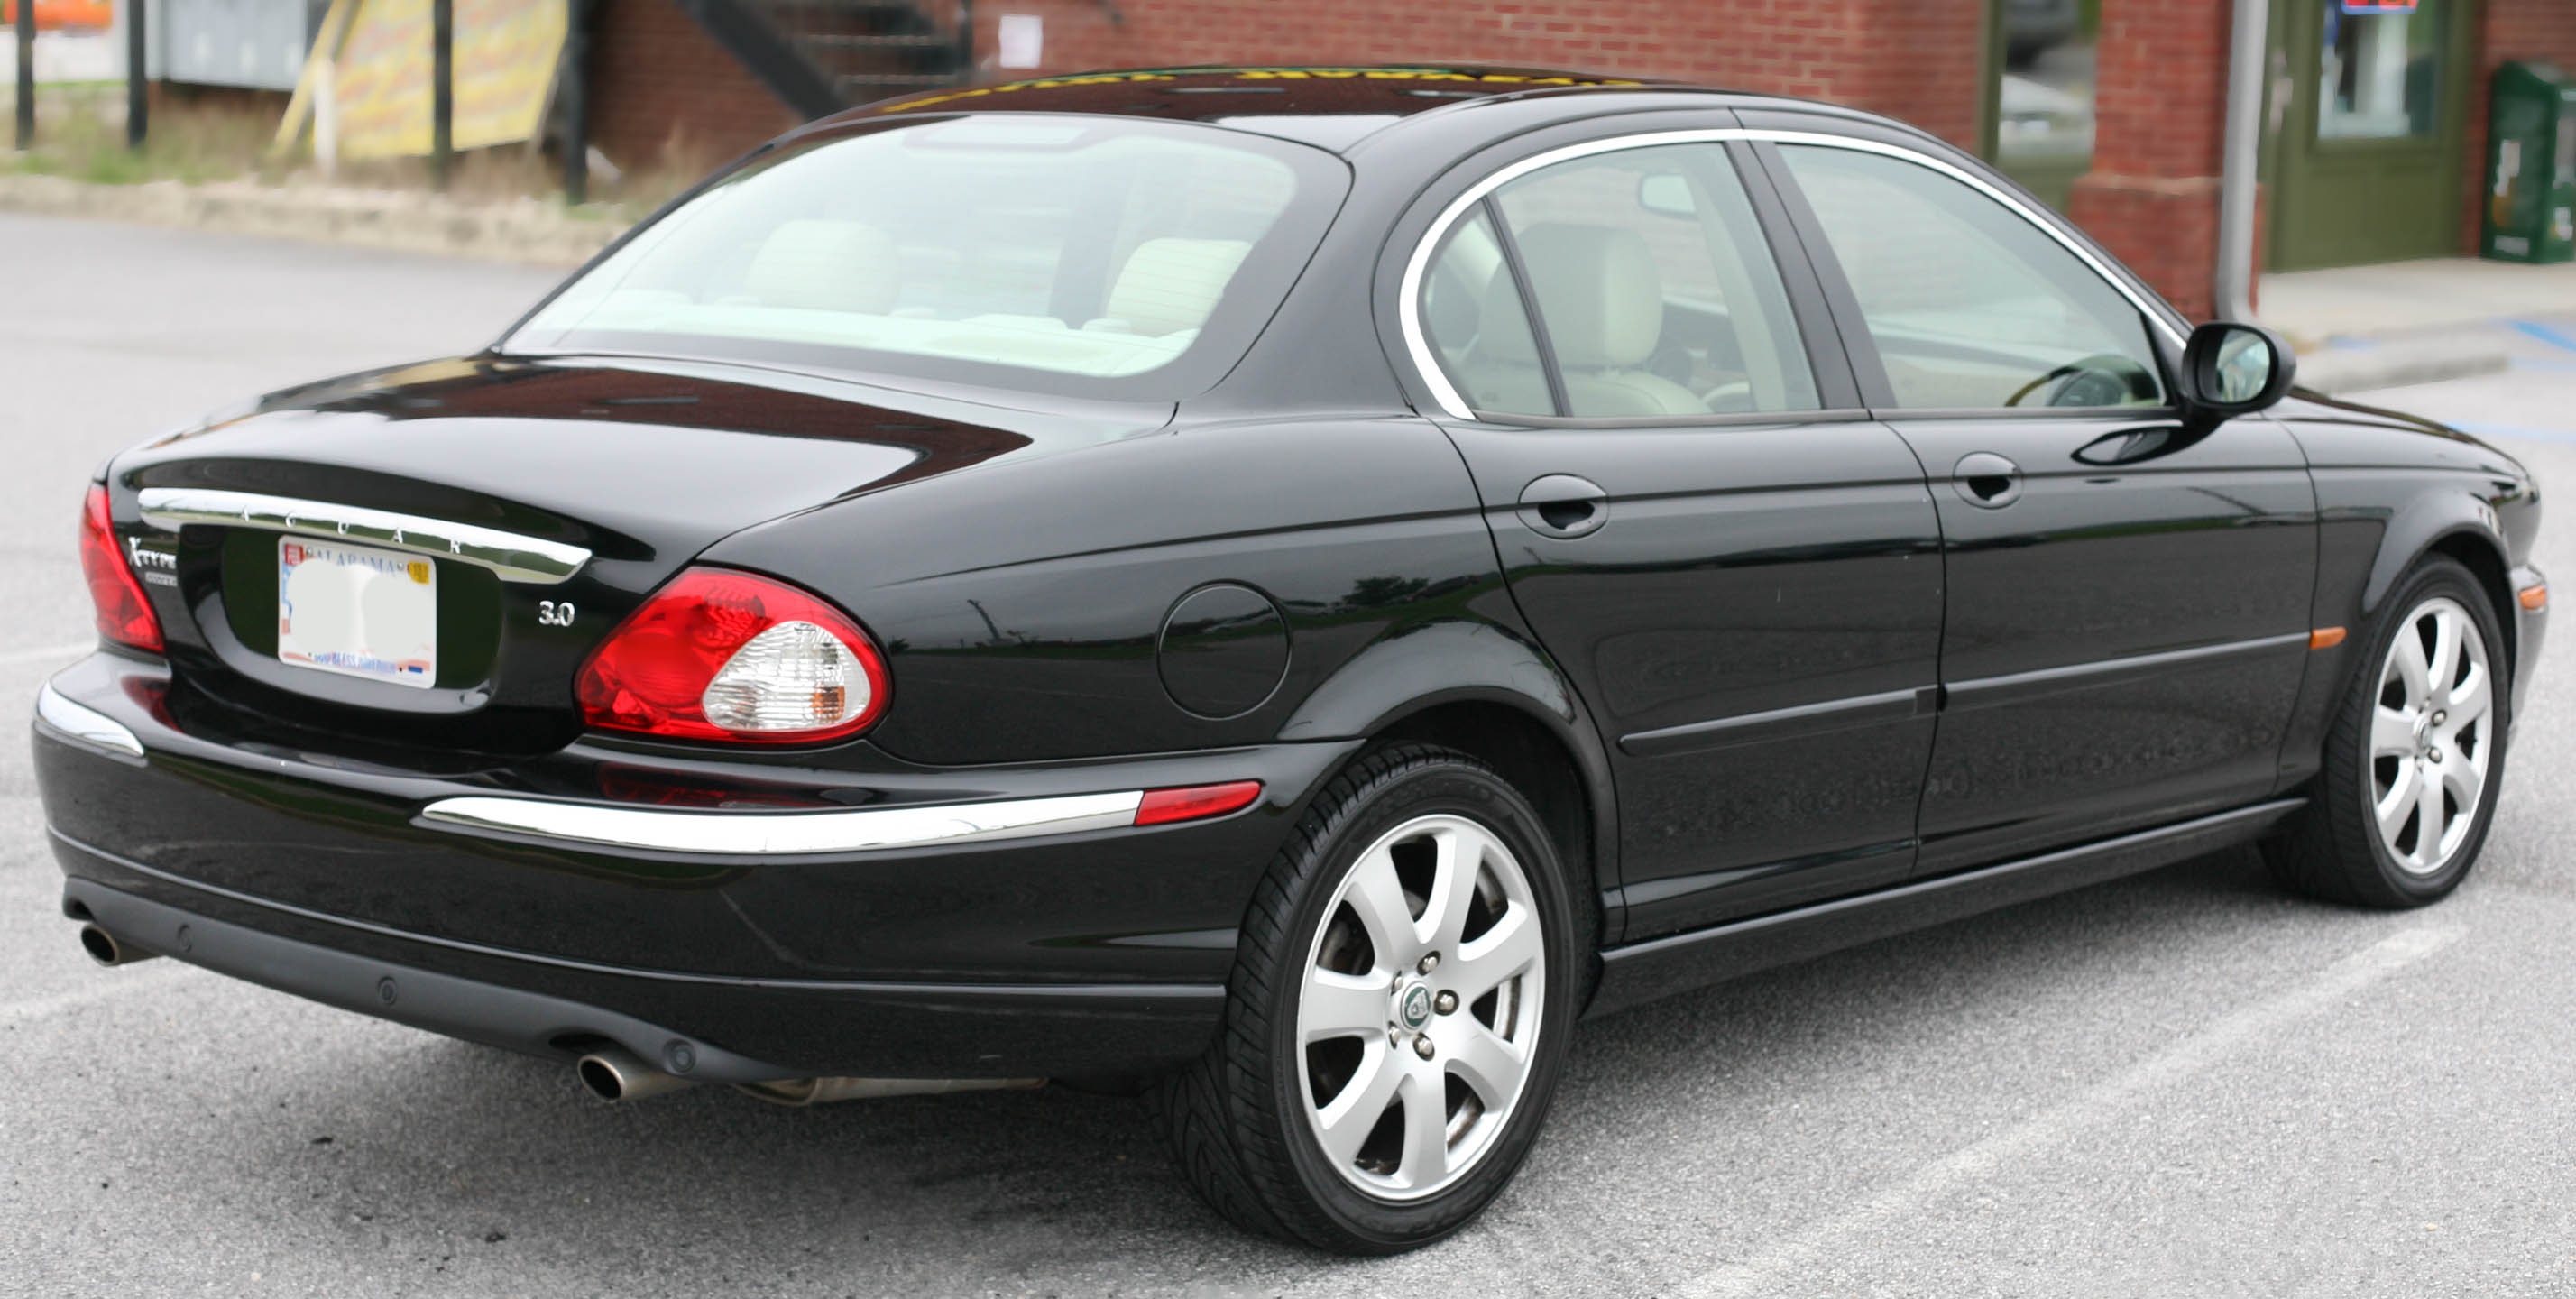 2004 Jaguar X-type - Information And Photos